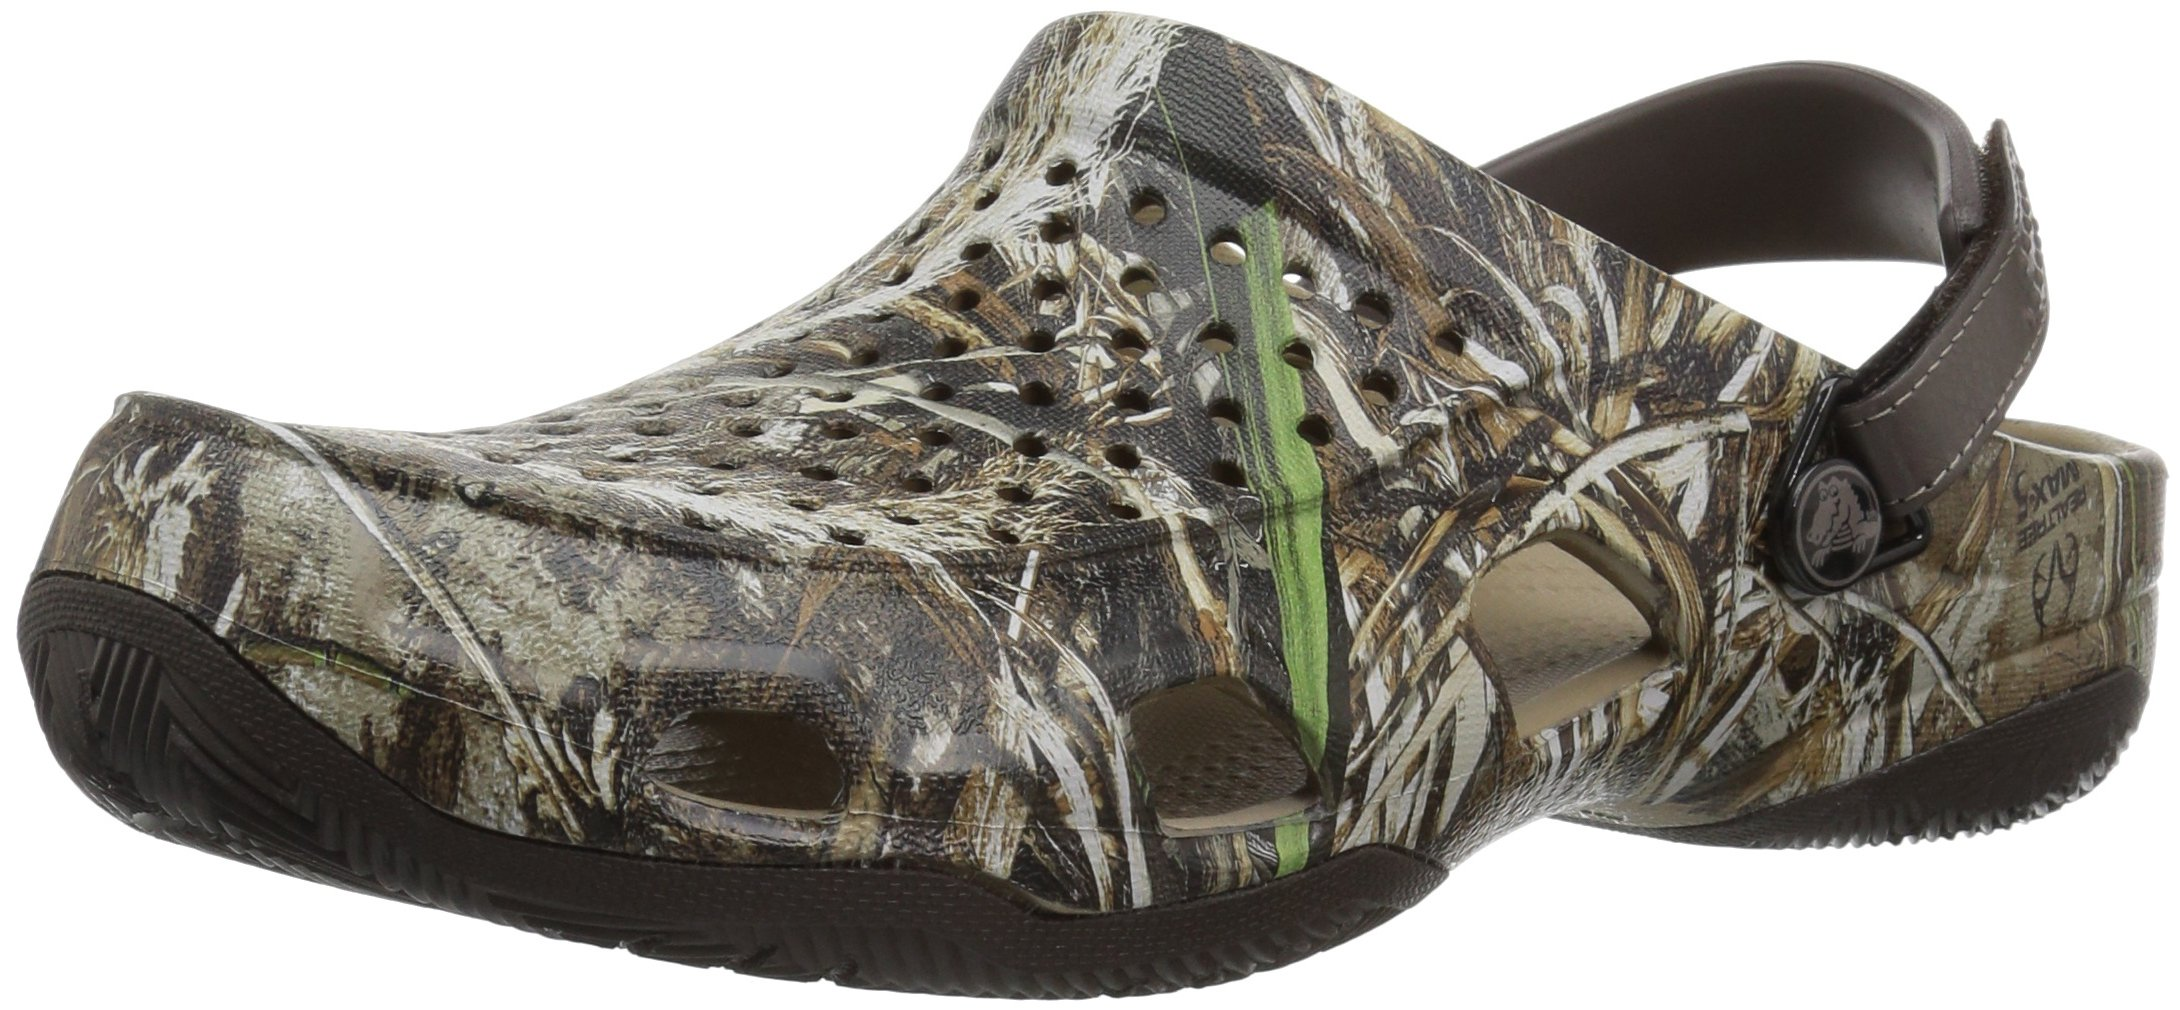 Crocs Men's Swiftwater Deck Realtree Max-5 Mule, Espresso, 10 M US